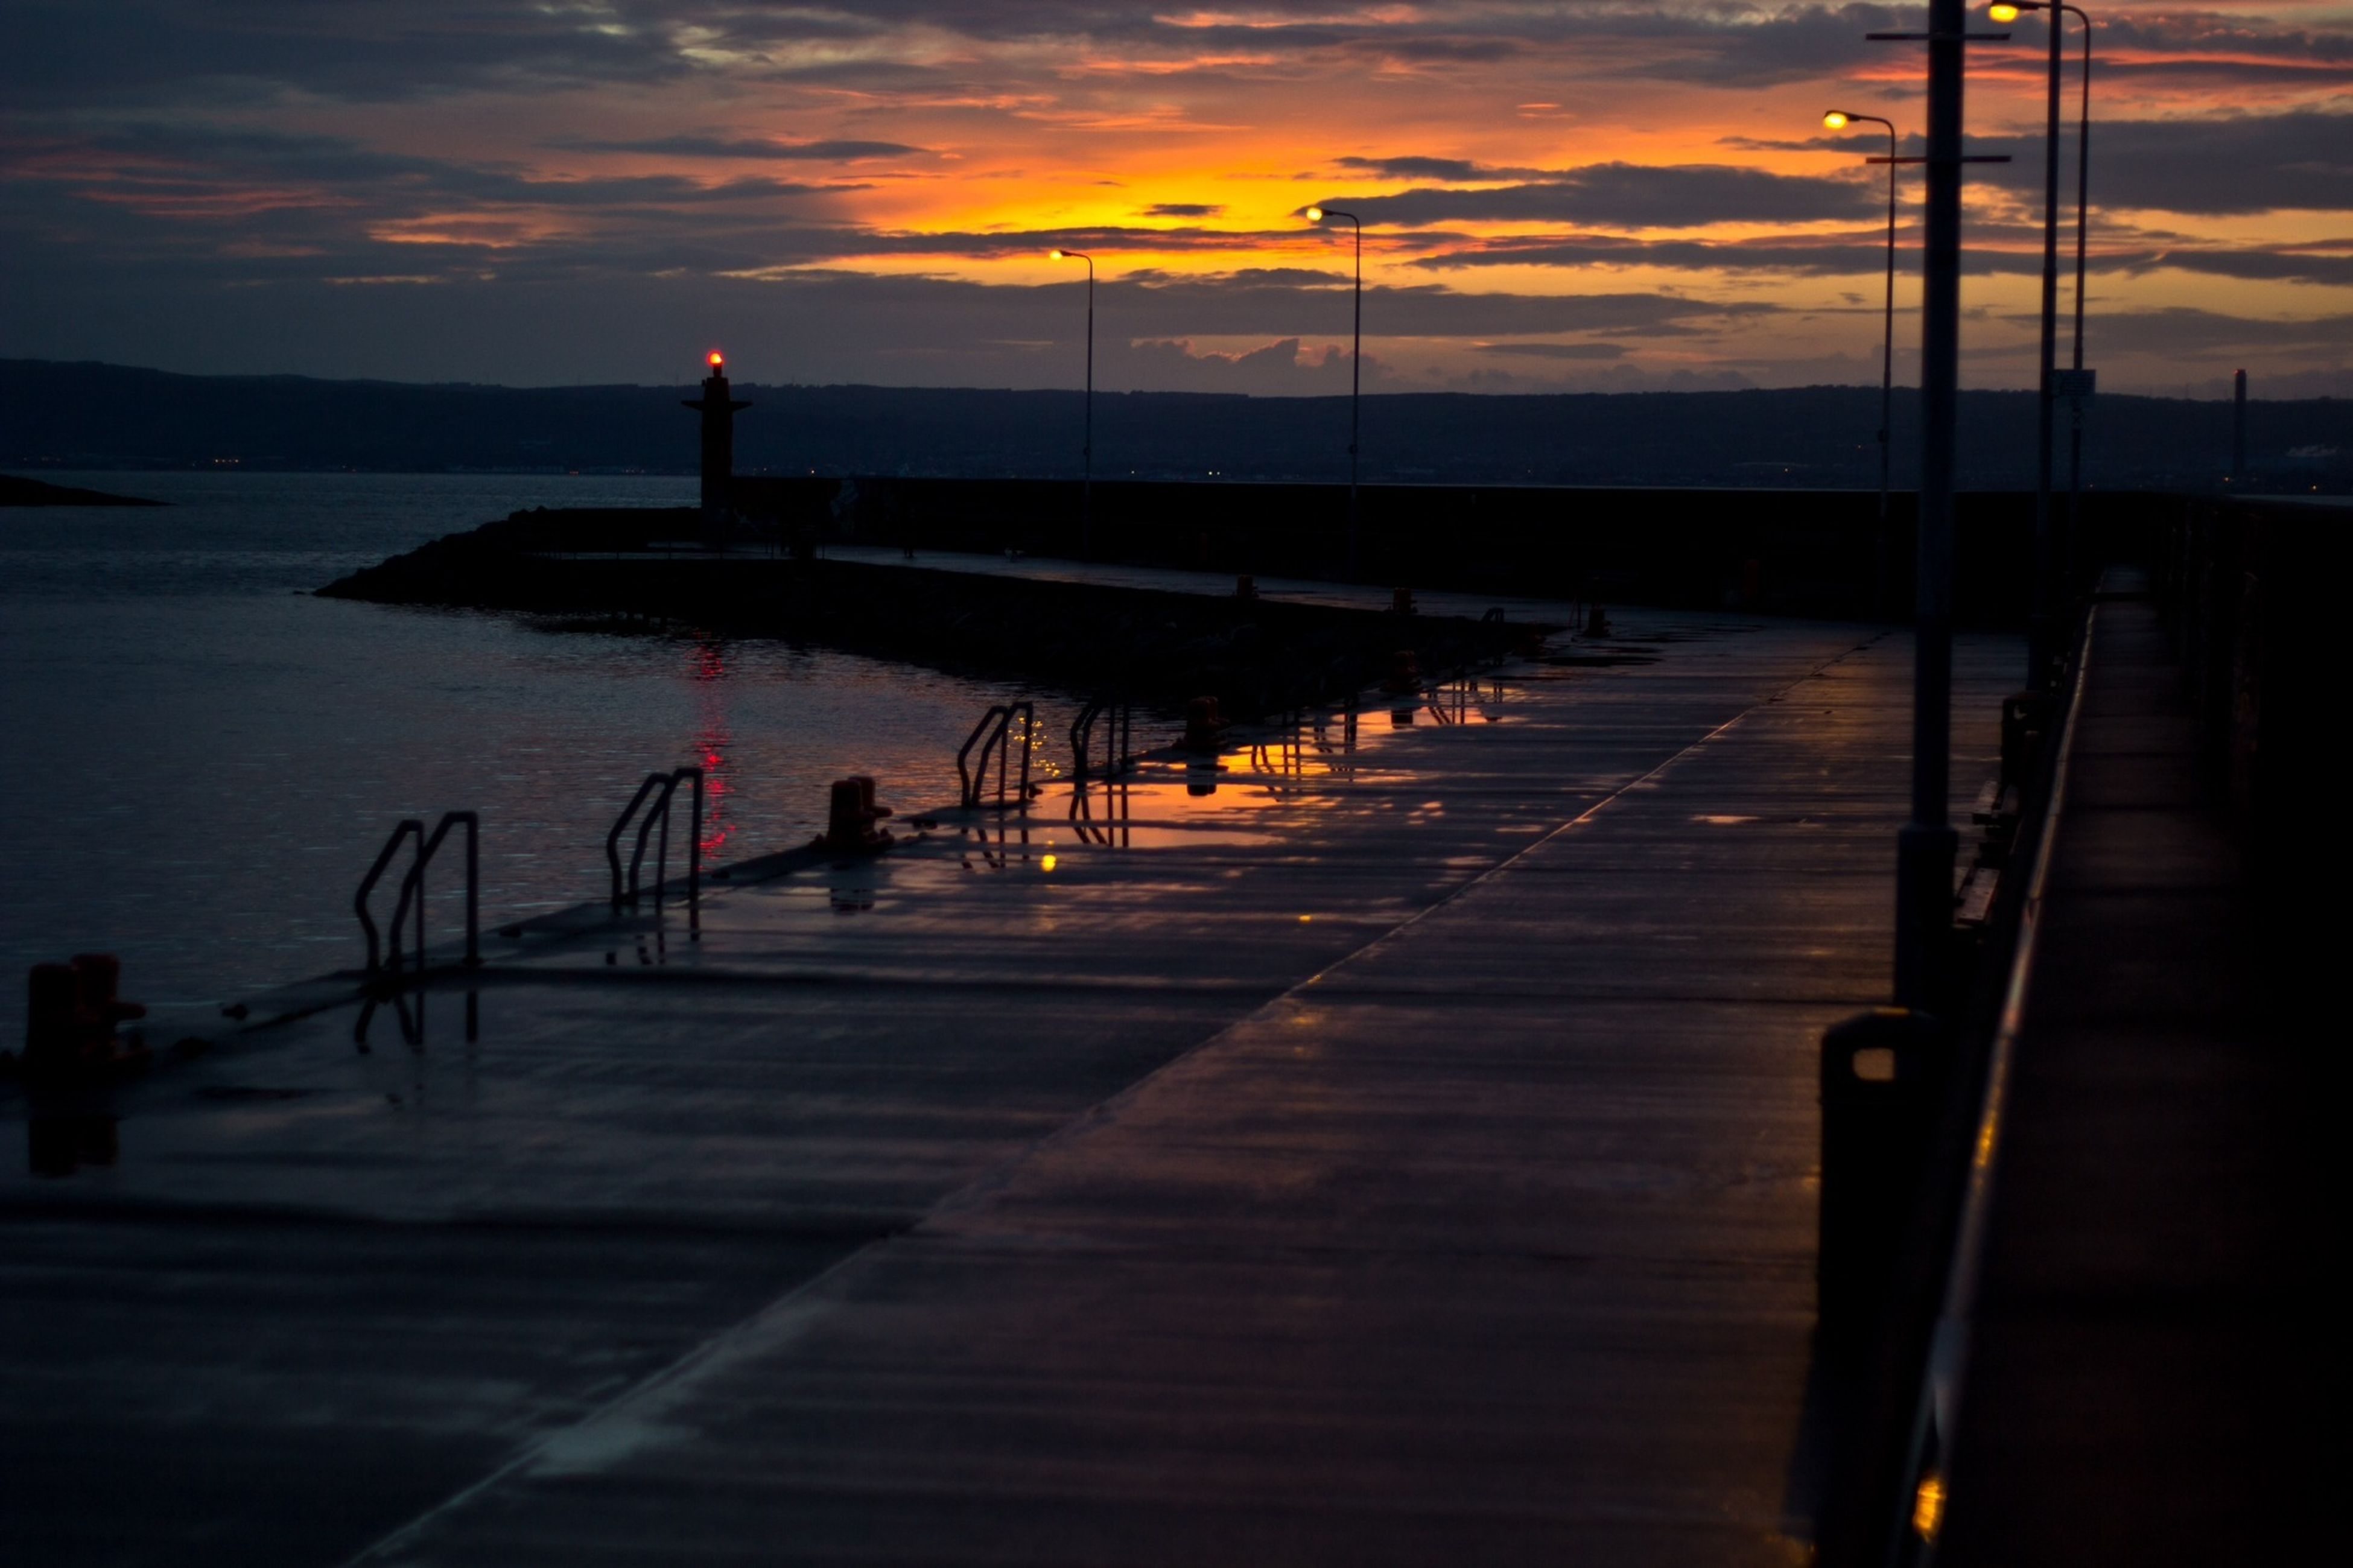 sunset, water, sky, pier, orange color, scenics, tranquil scene, sea, tranquility, beauty in nature, cloud - sky, silhouette, idyllic, nature, the way forward, empty, railing, street light, jetty, lake